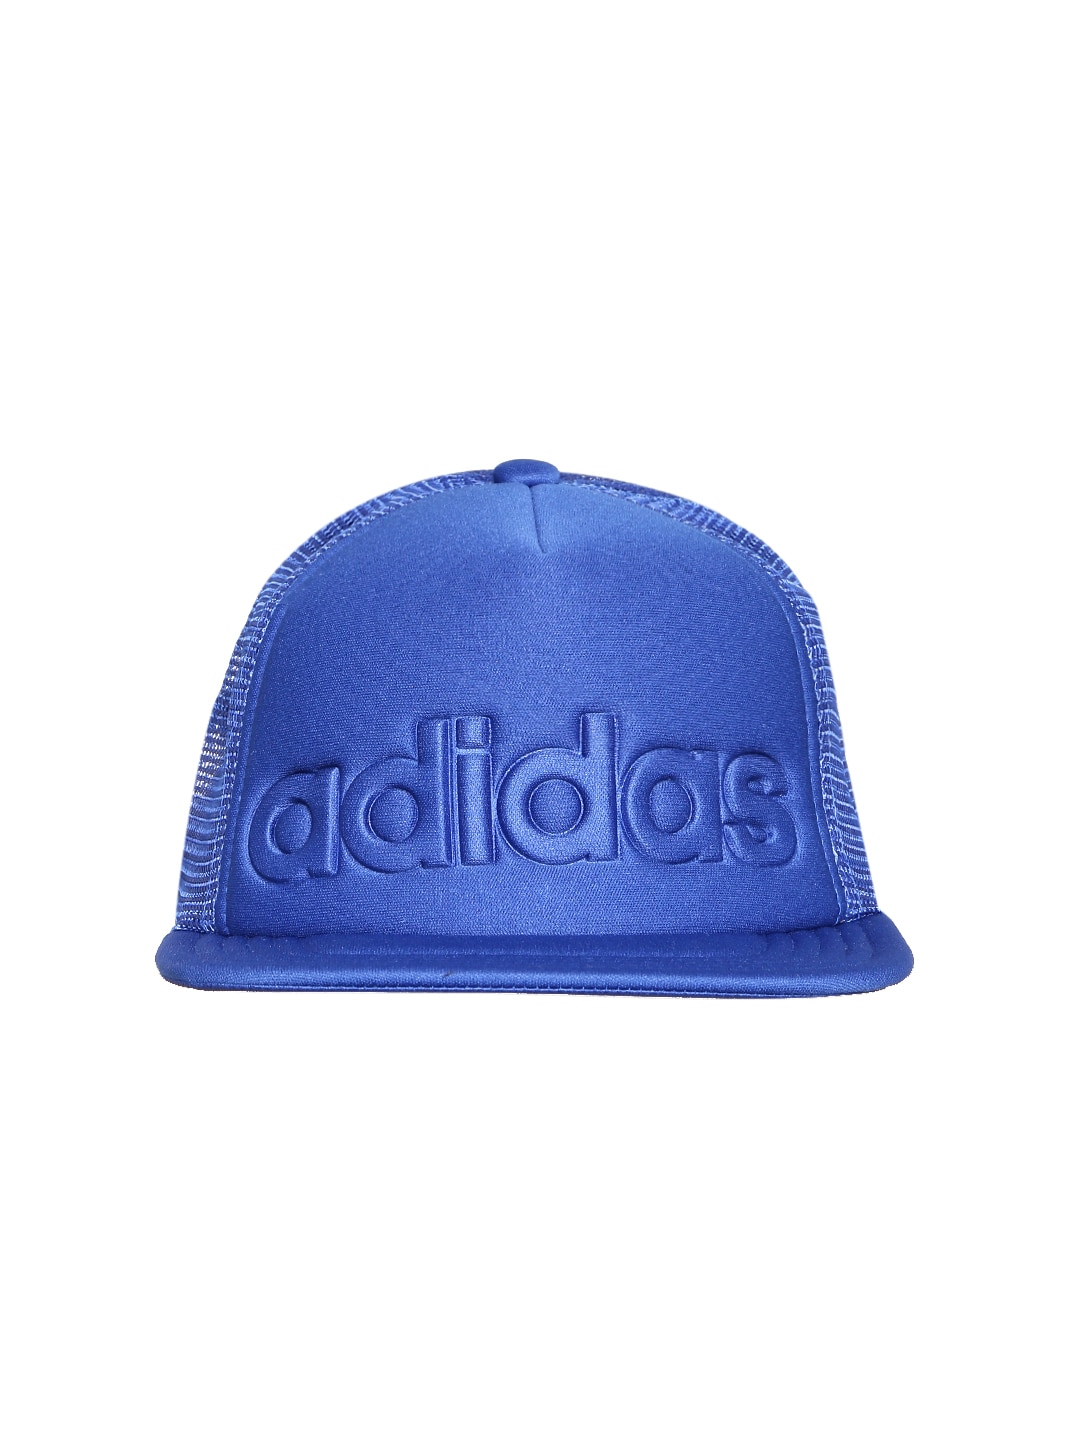 157d680306d Adidas Neo - Adidas Neo Online Store in India